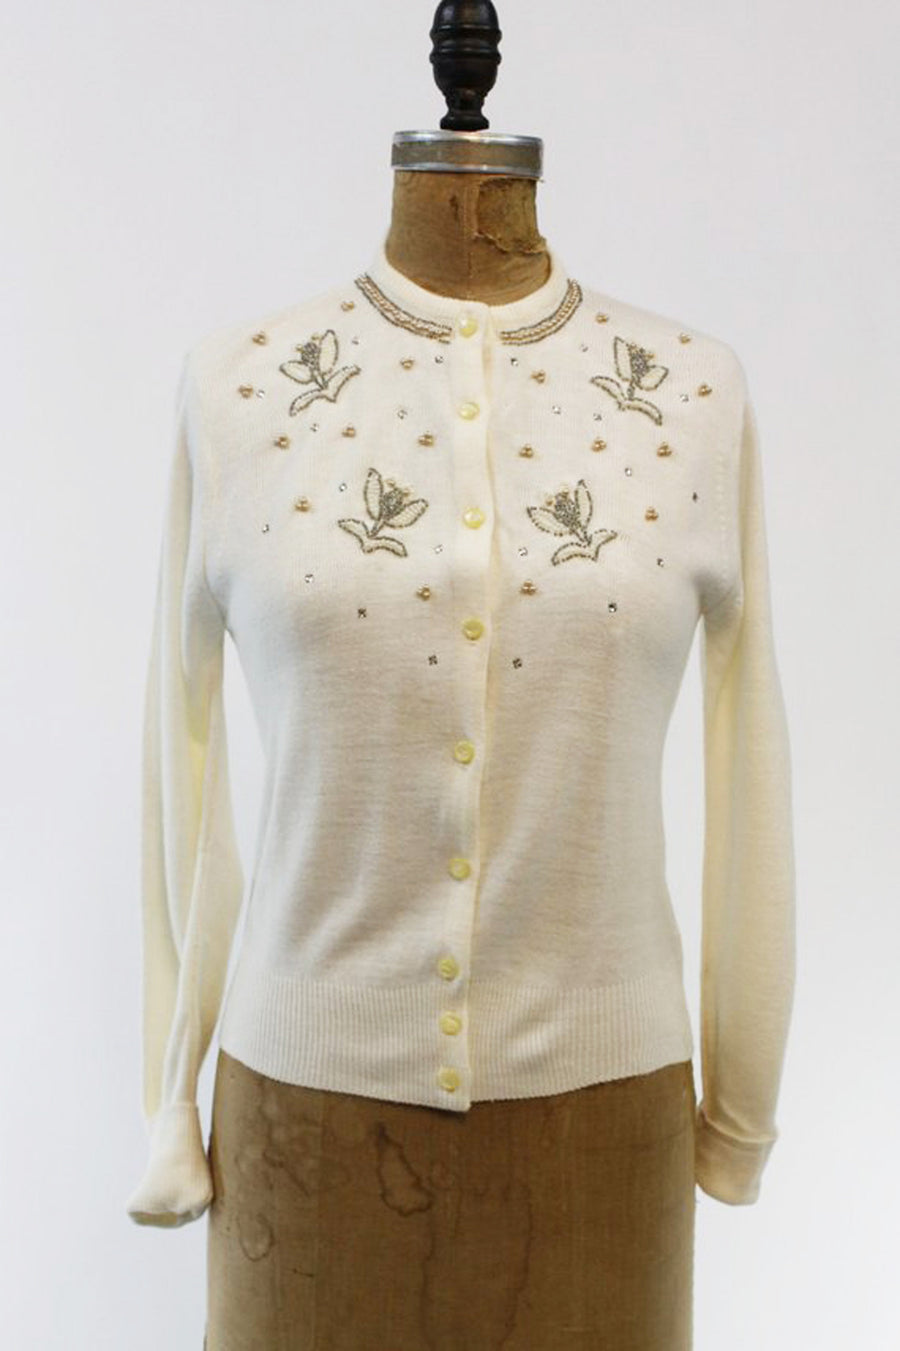 1950s beaded cardigan | orlon knit floral sweater | small - medium